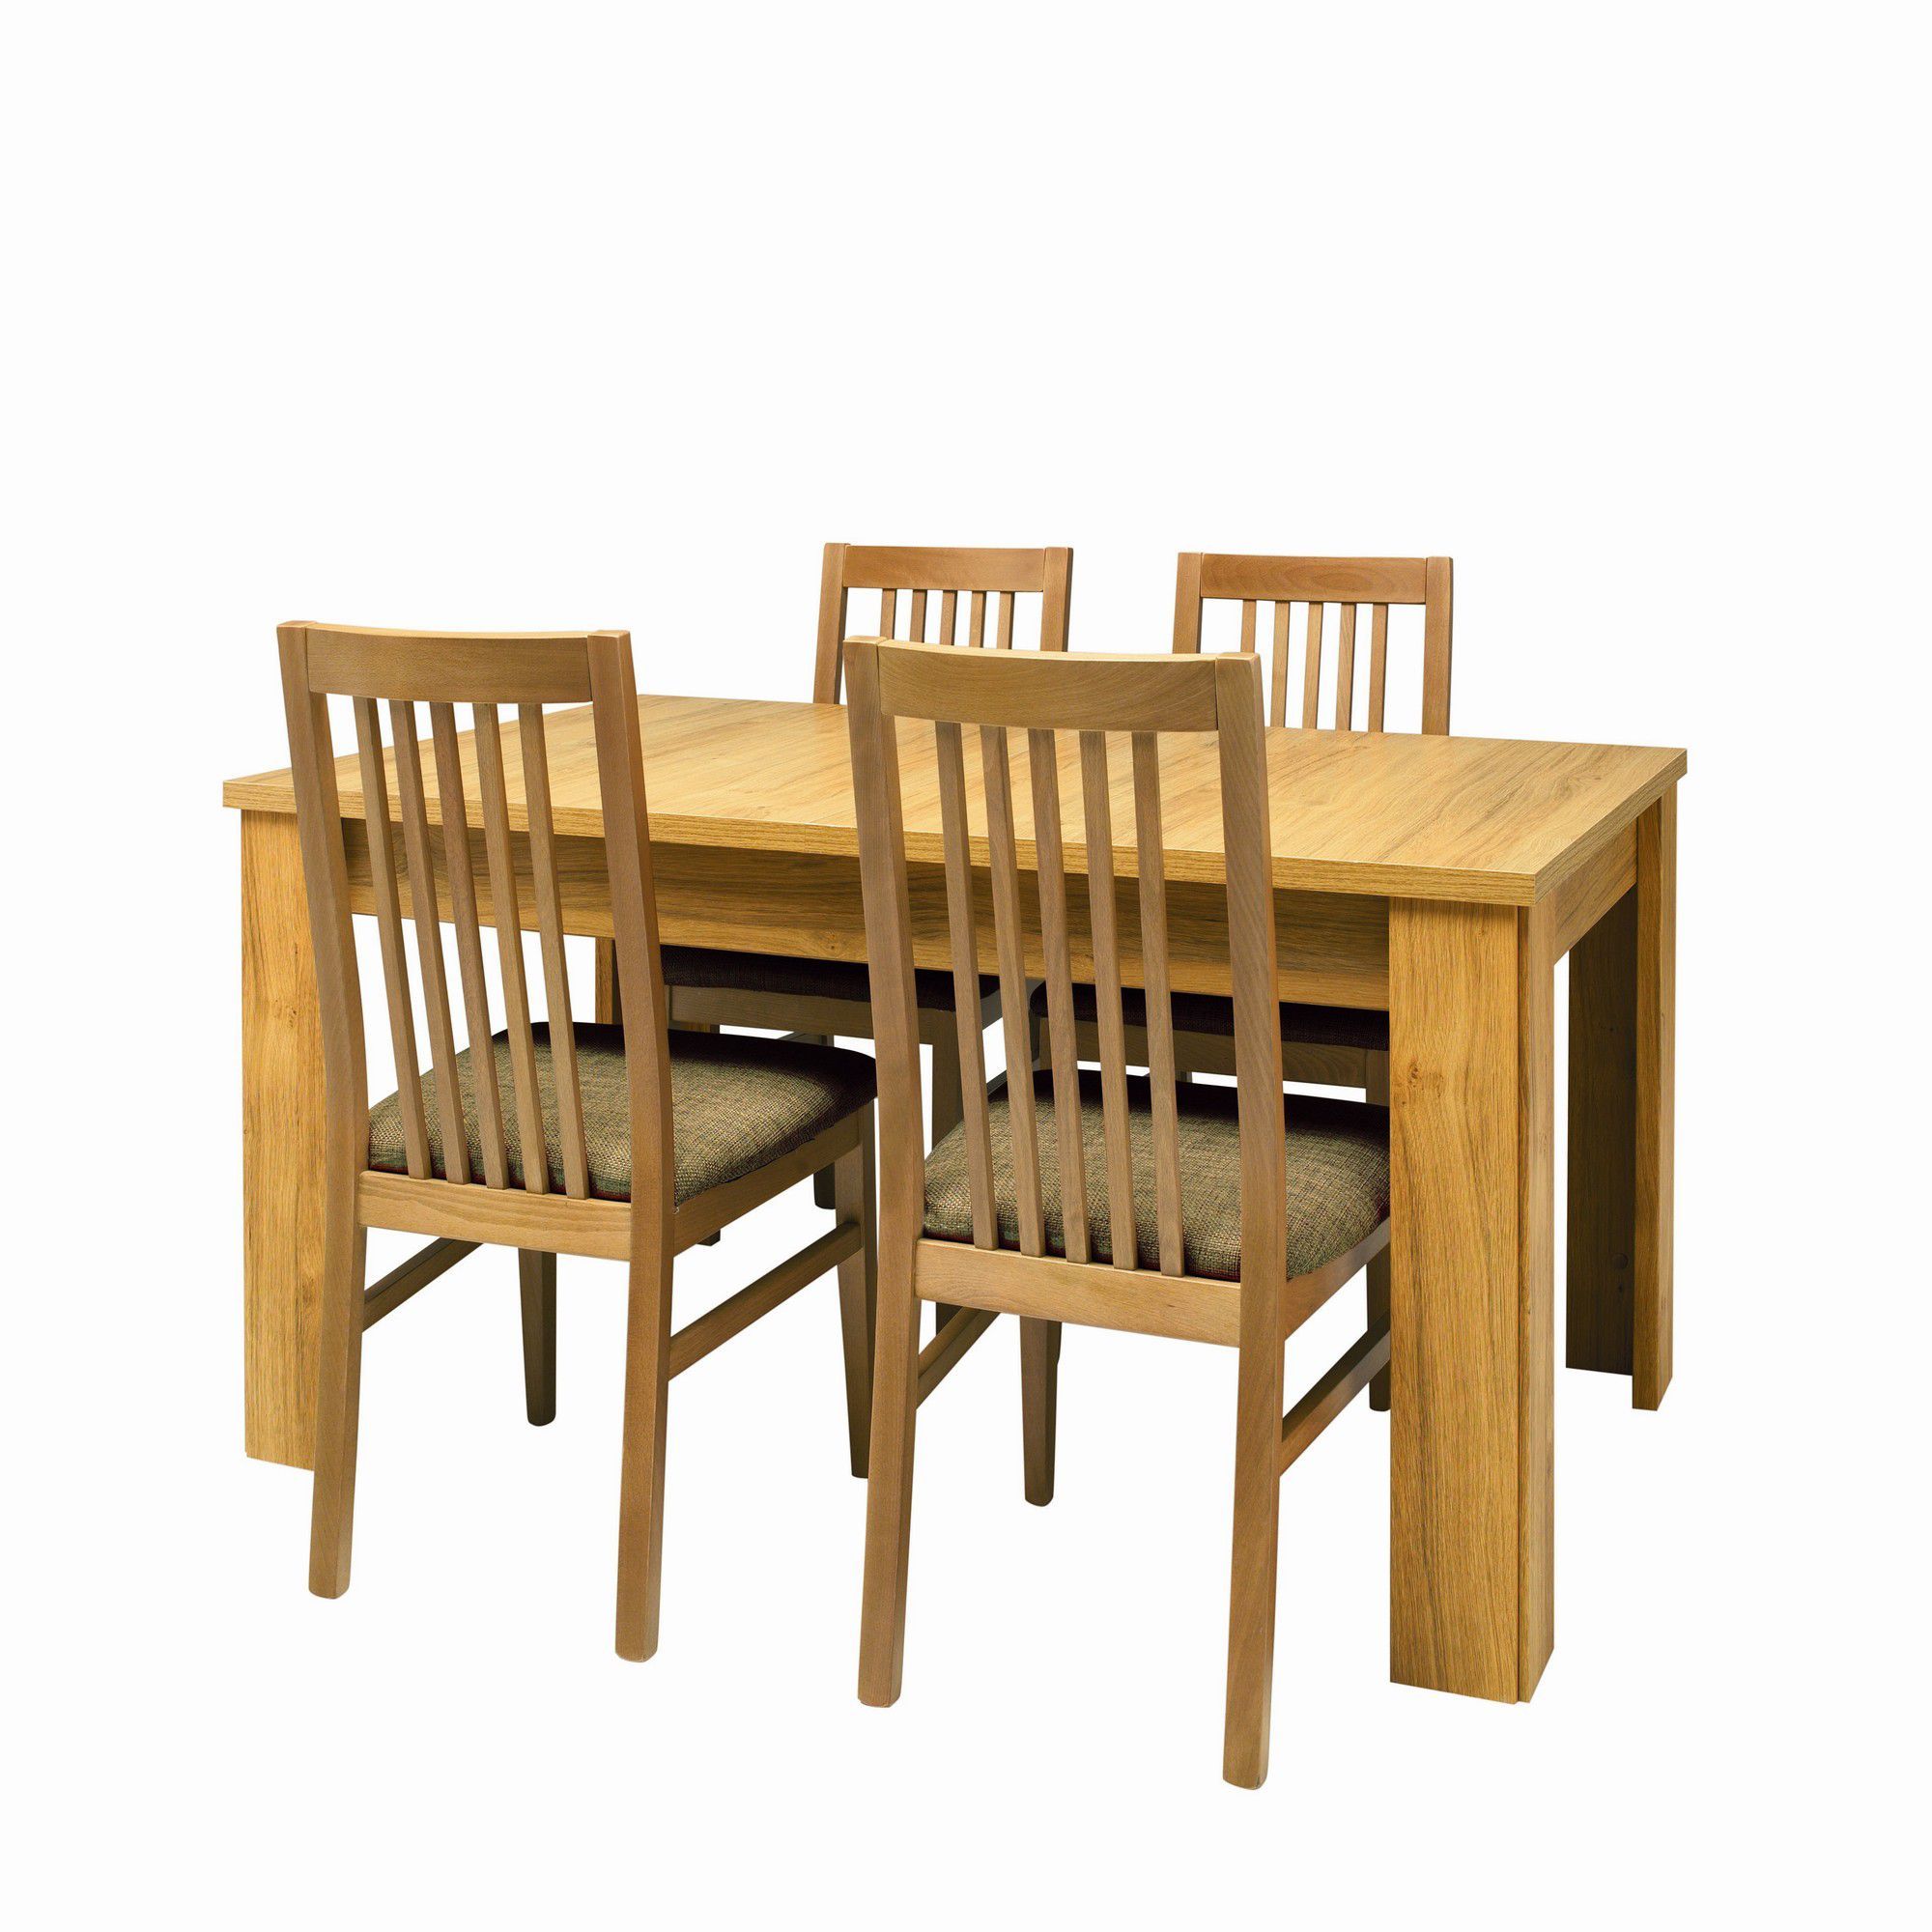 Other Caxton Strand Extending Dining Set with 4 Slatted Back Dining Chairs in Oak - Mushroom